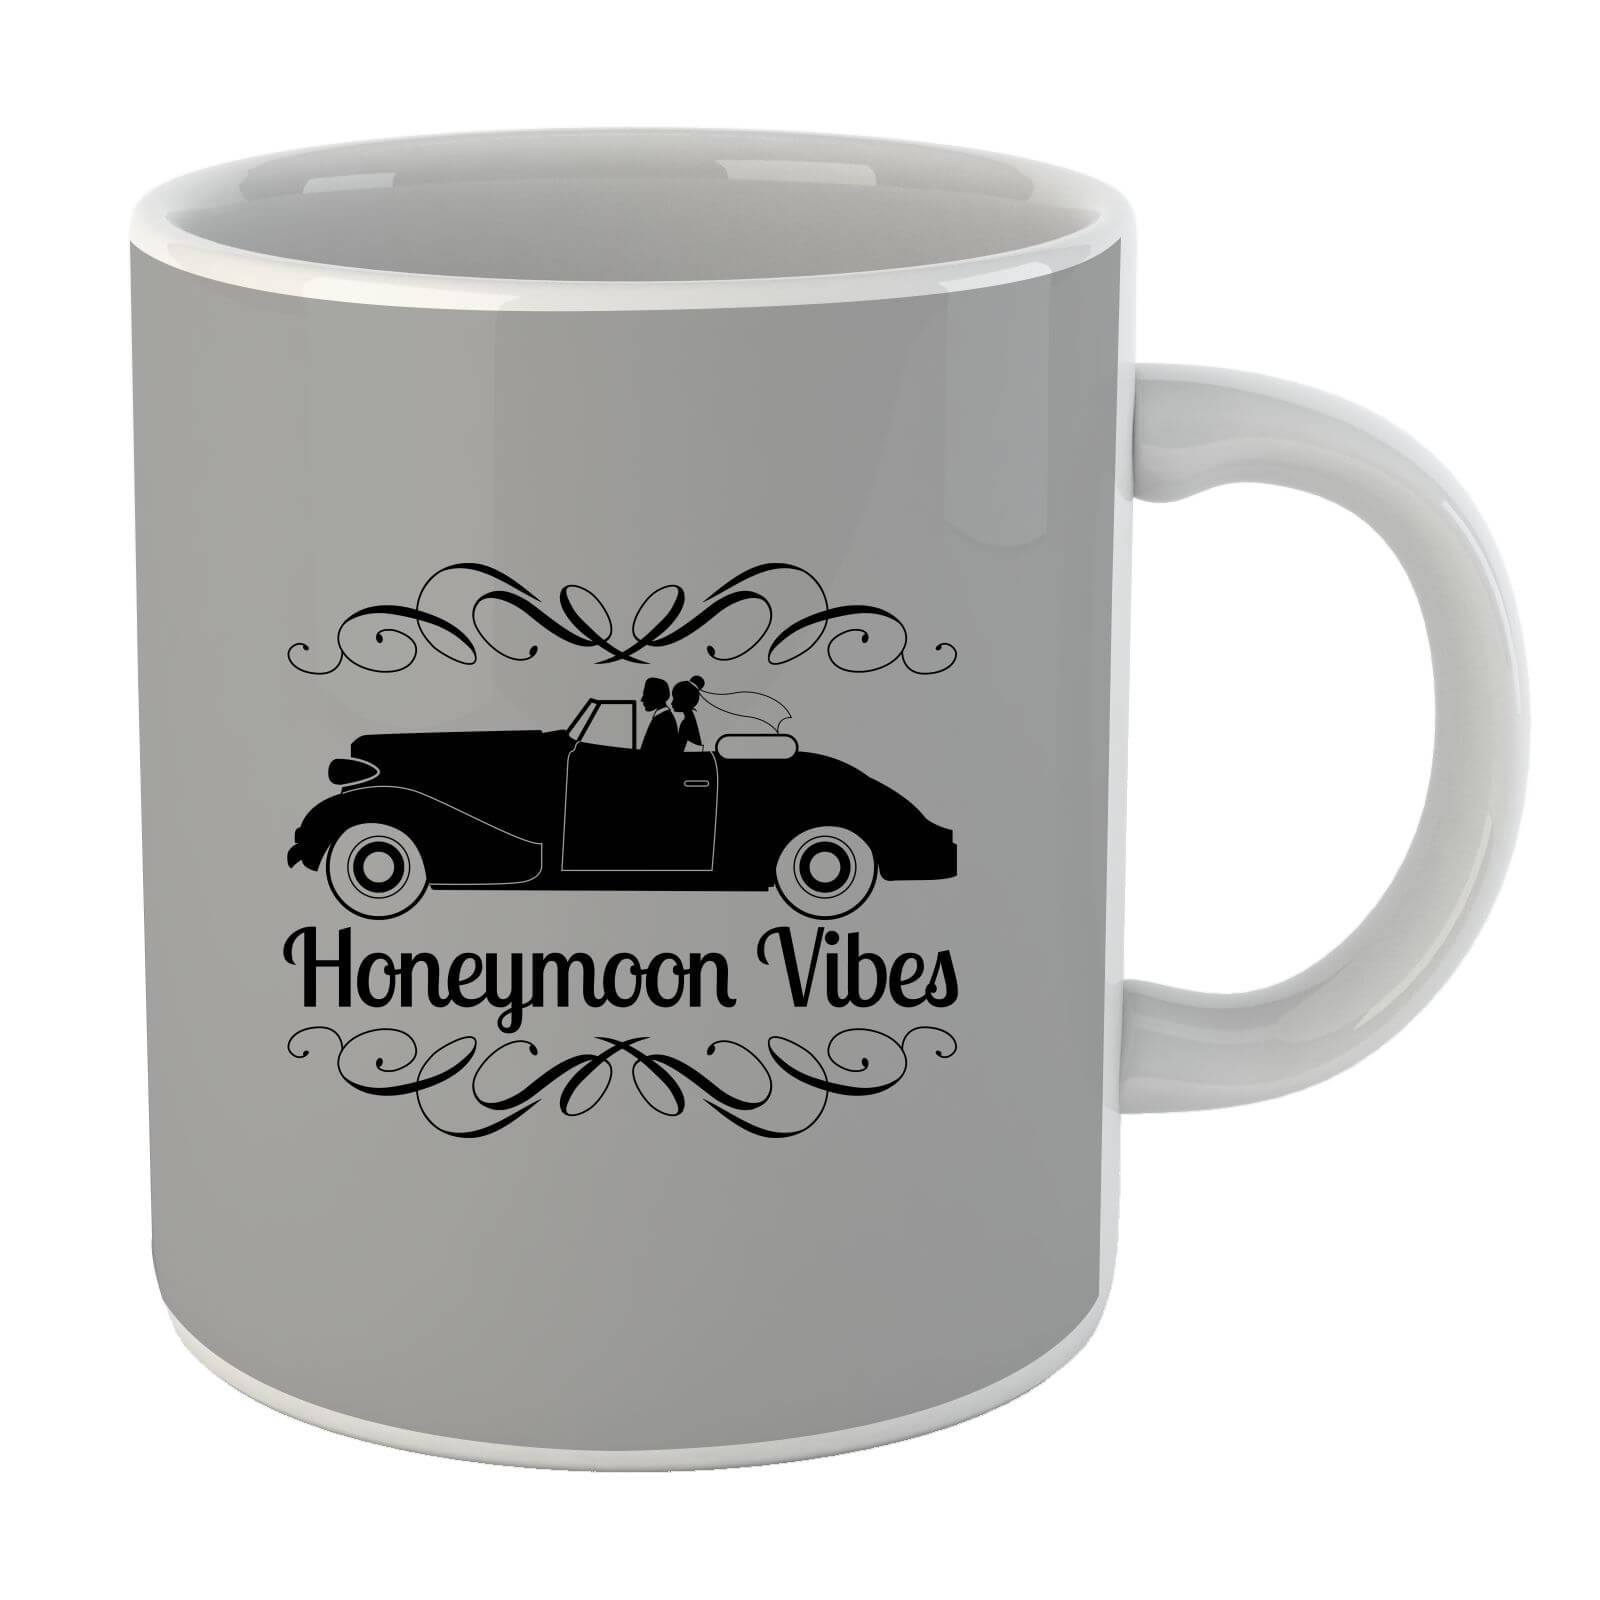 Honeymoon Vibes Mug